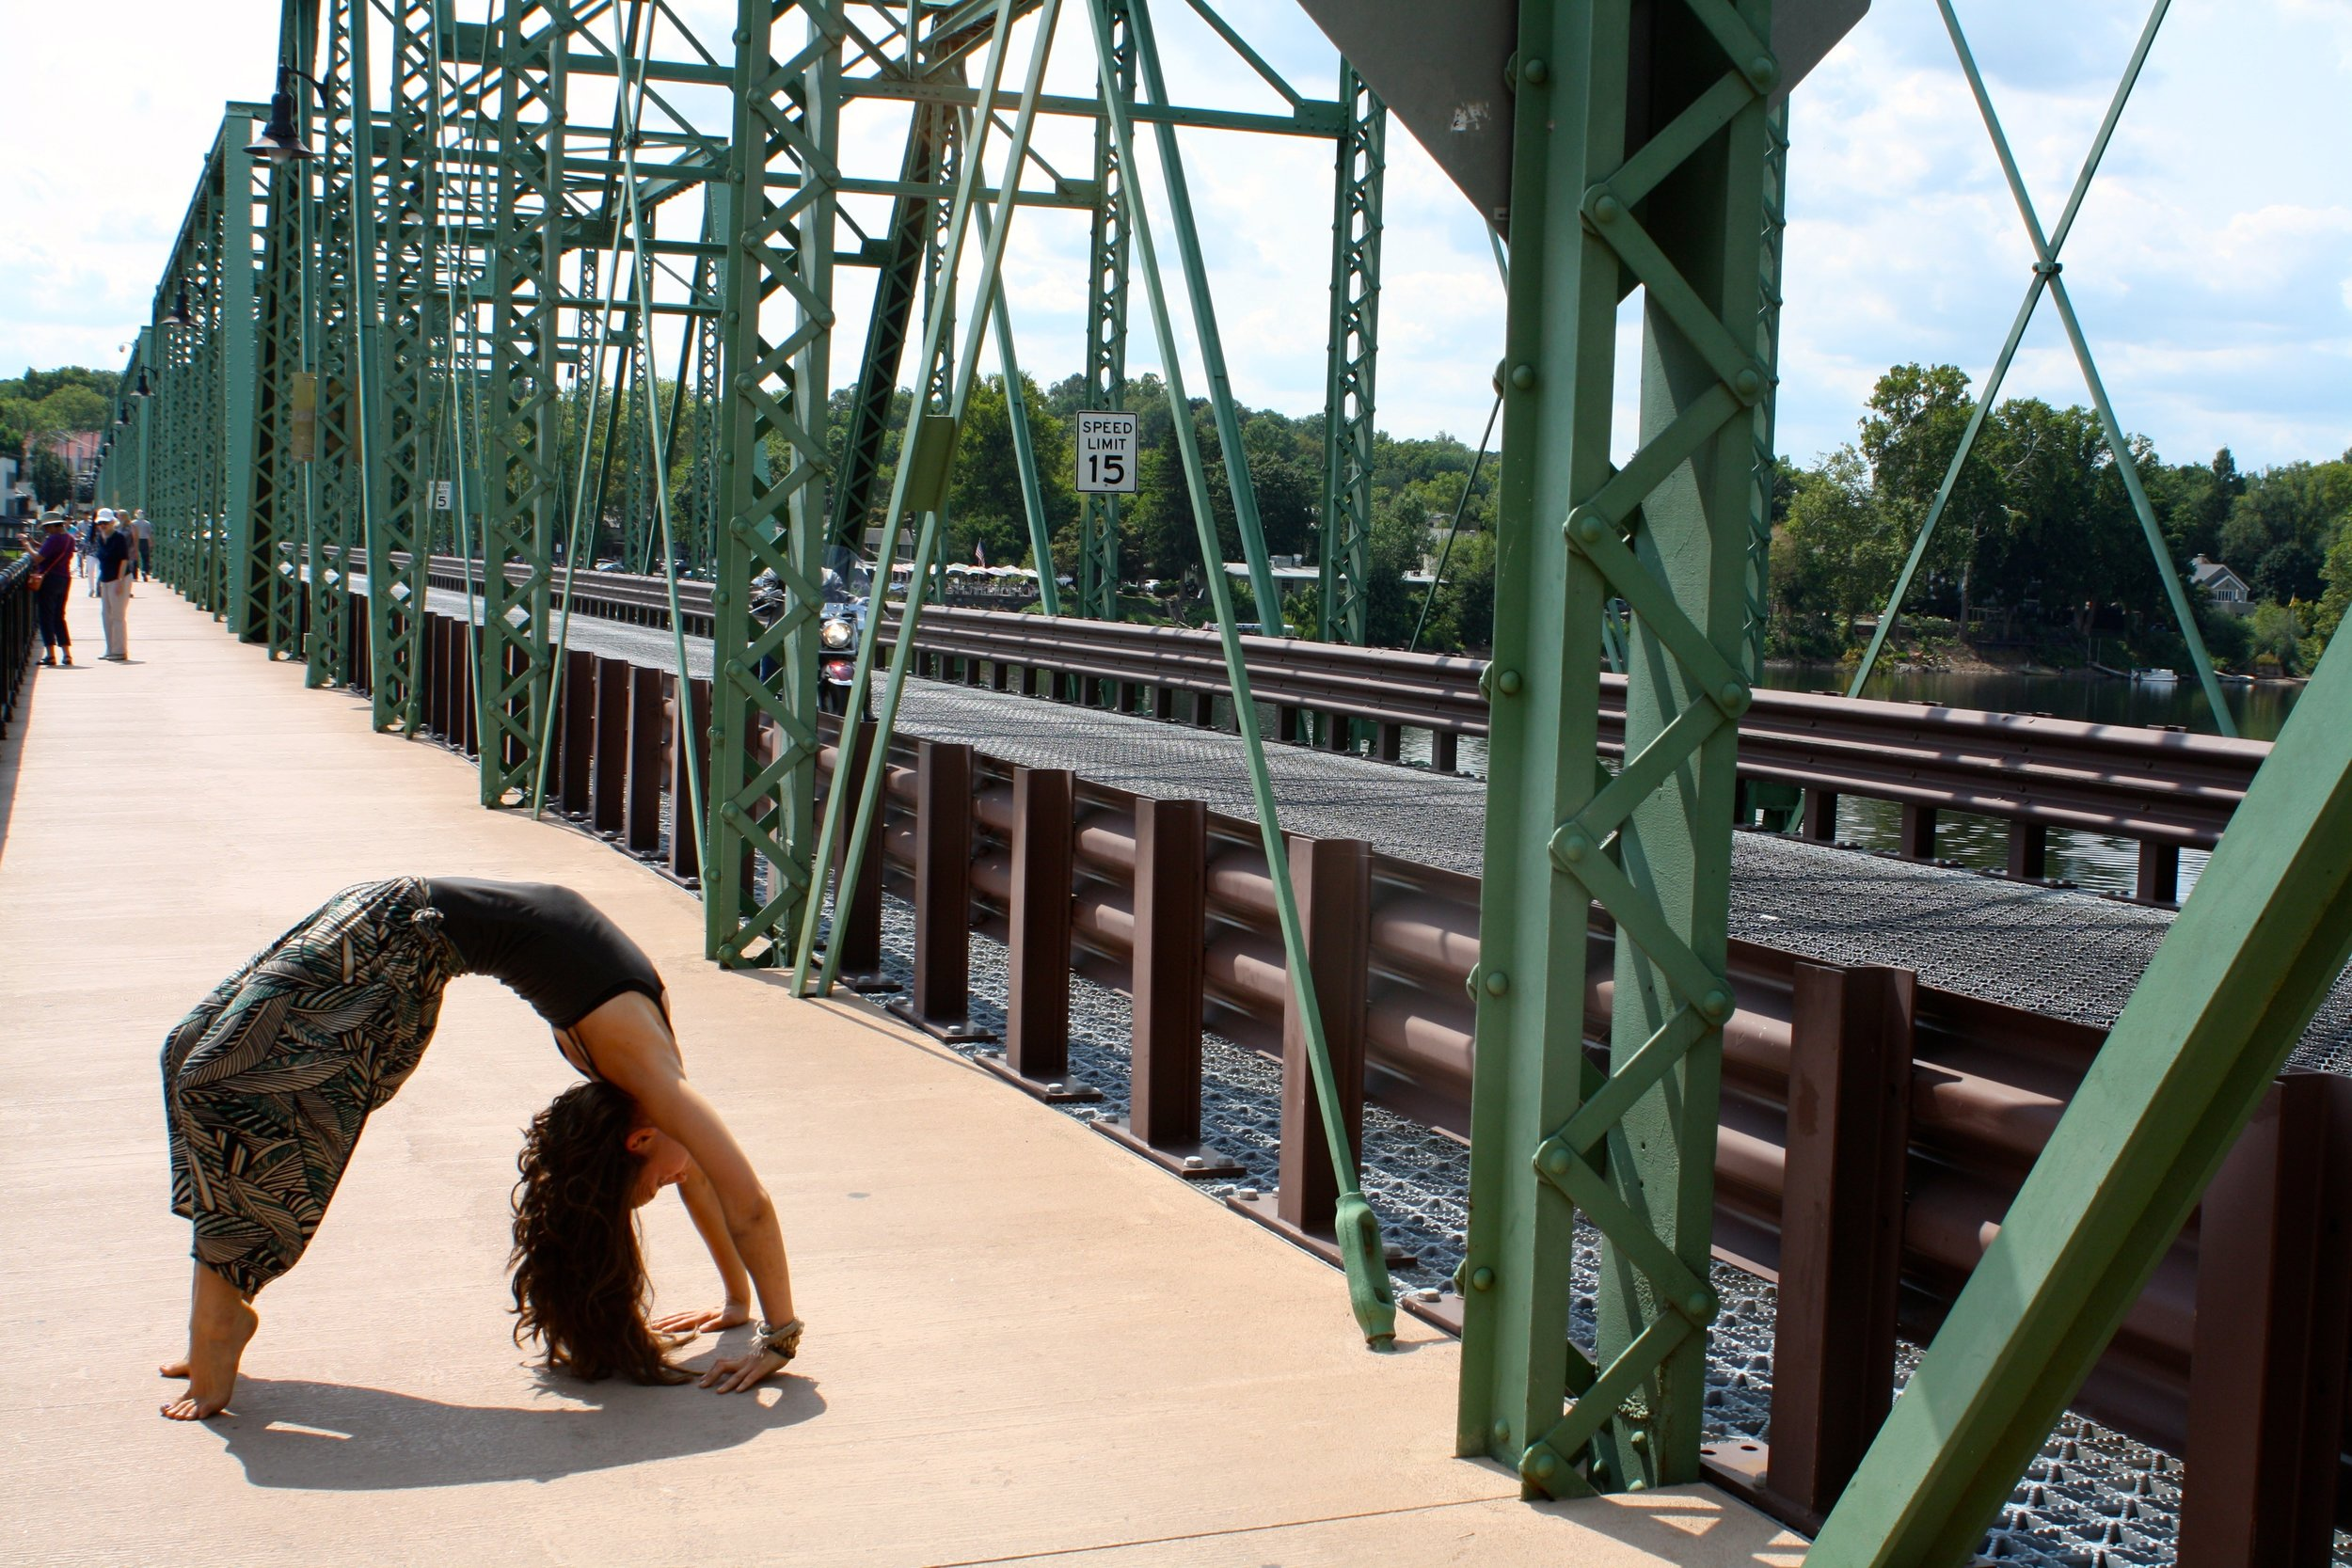 uwm.oxygen.backbend.girl-bridge-female-relax-amusement-park-park-890535-pxhere.com.jpg